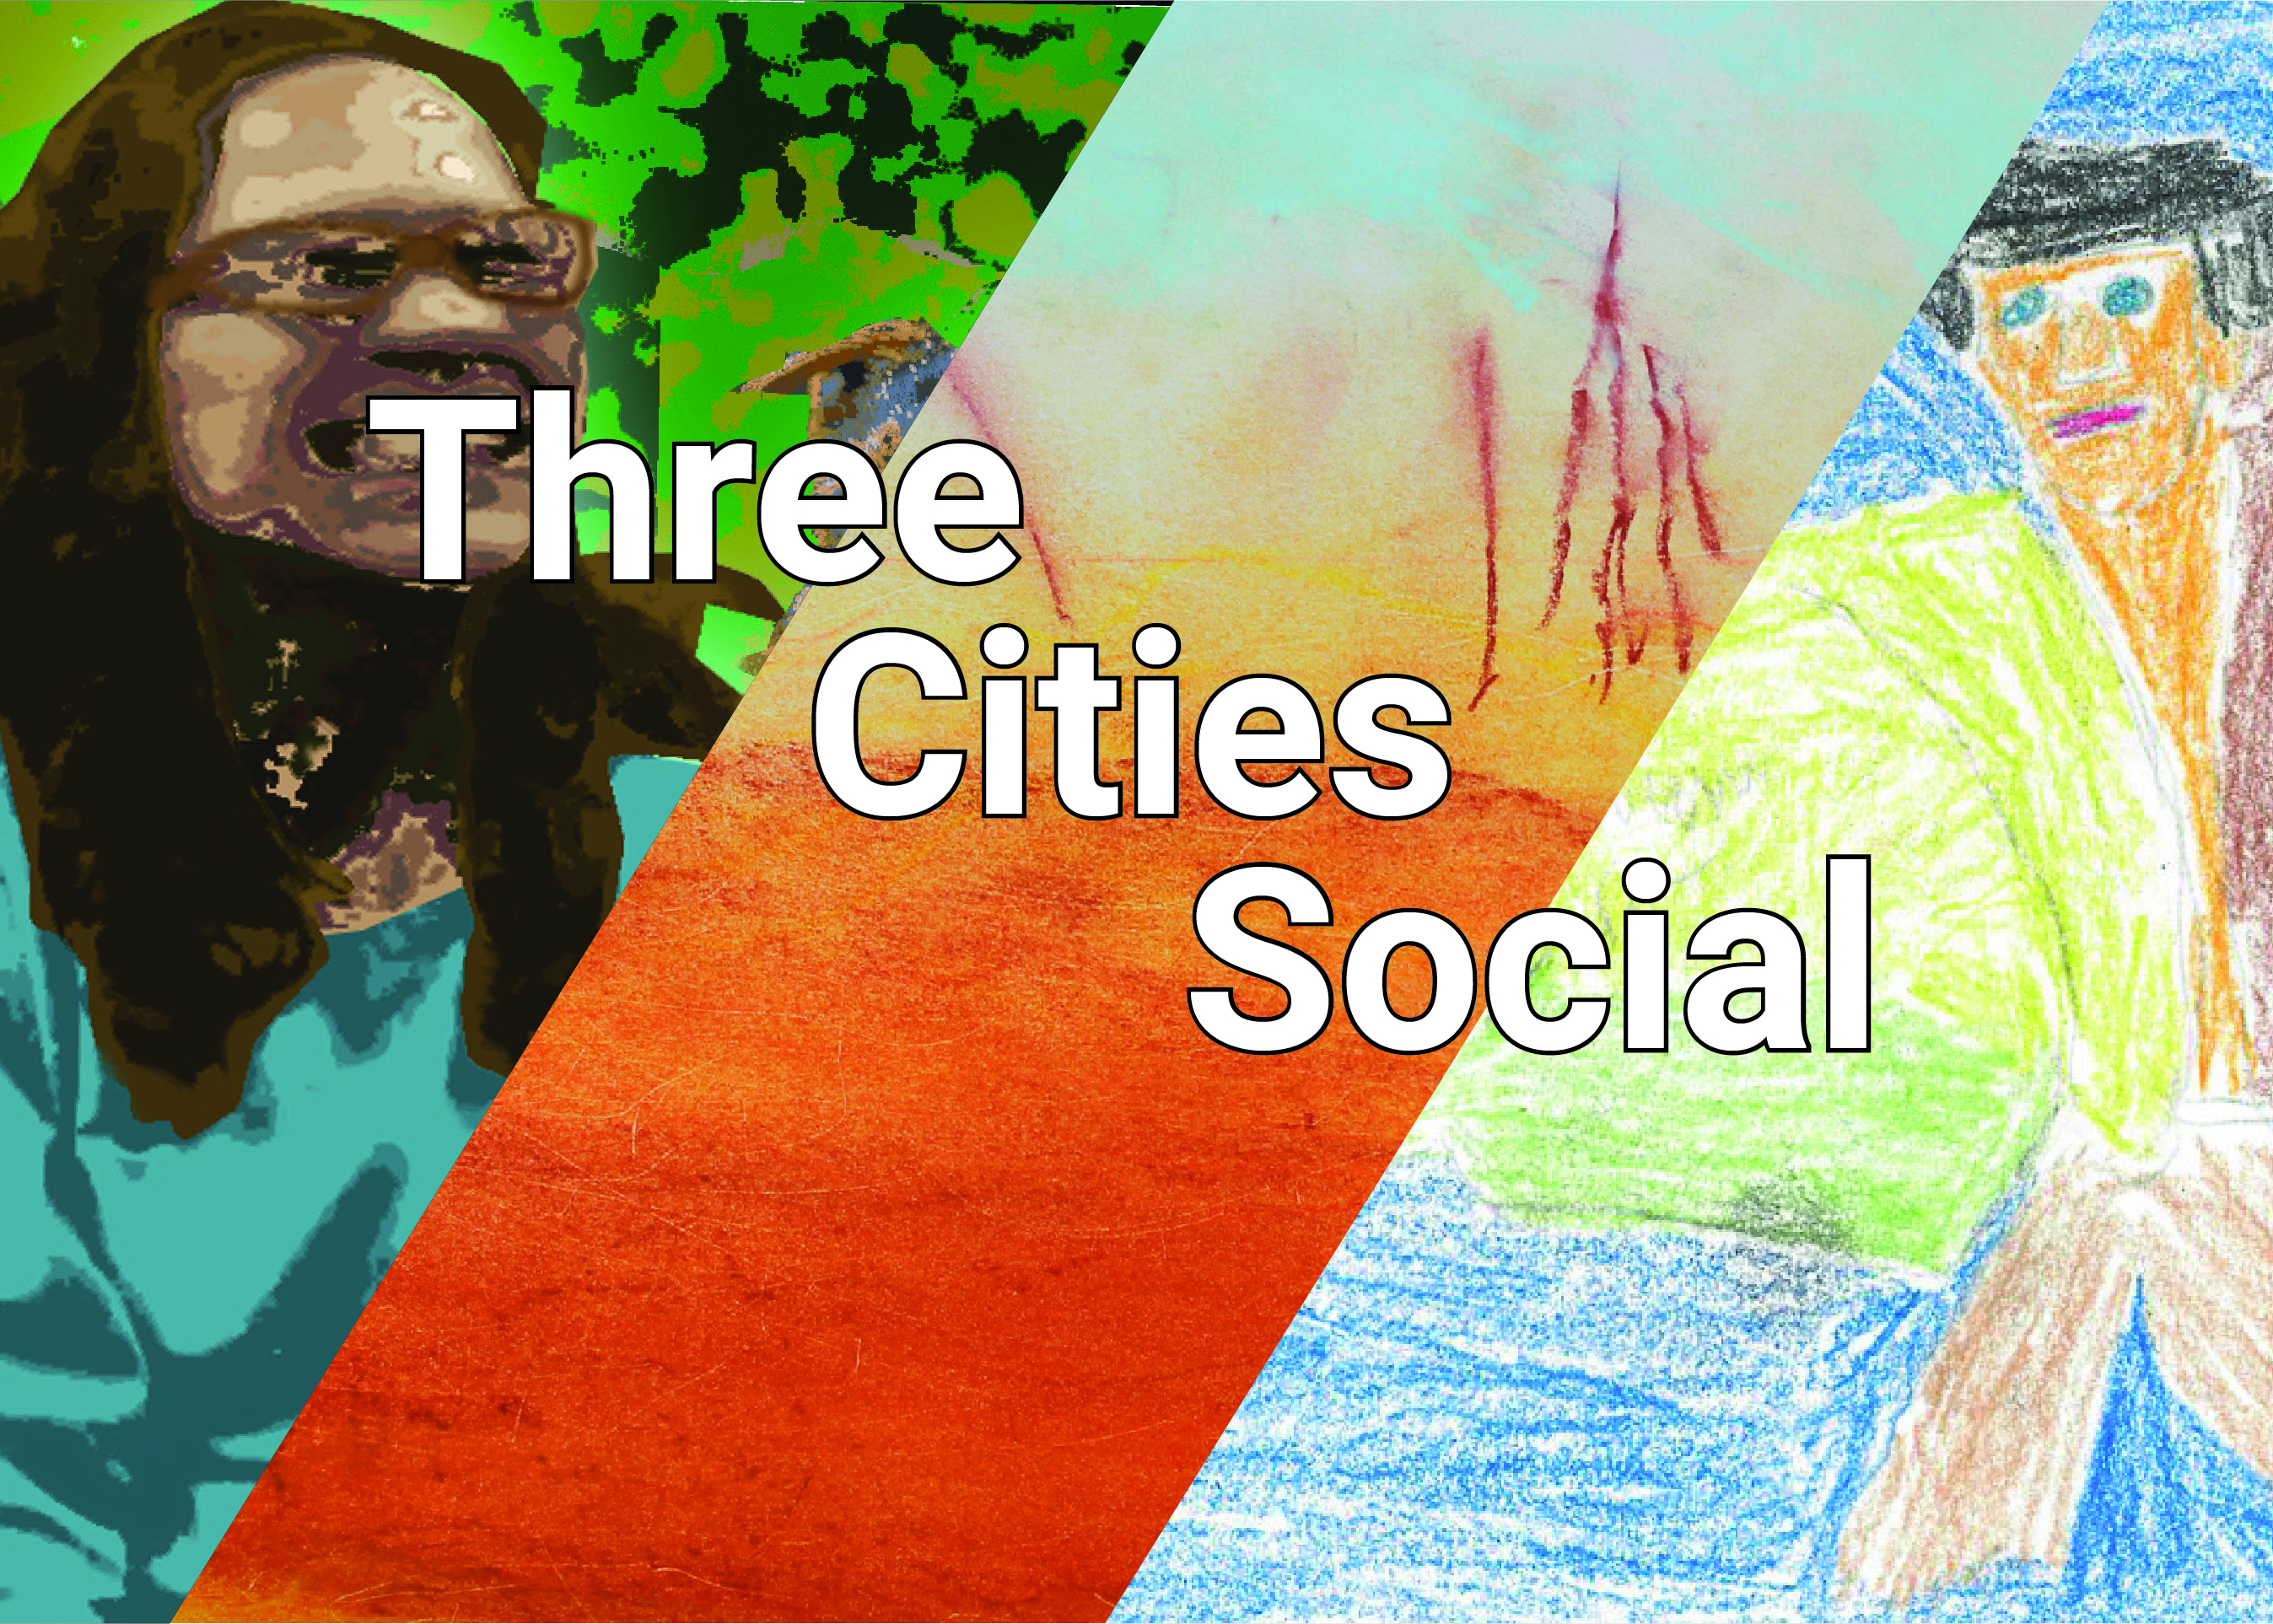 Three Cities Social